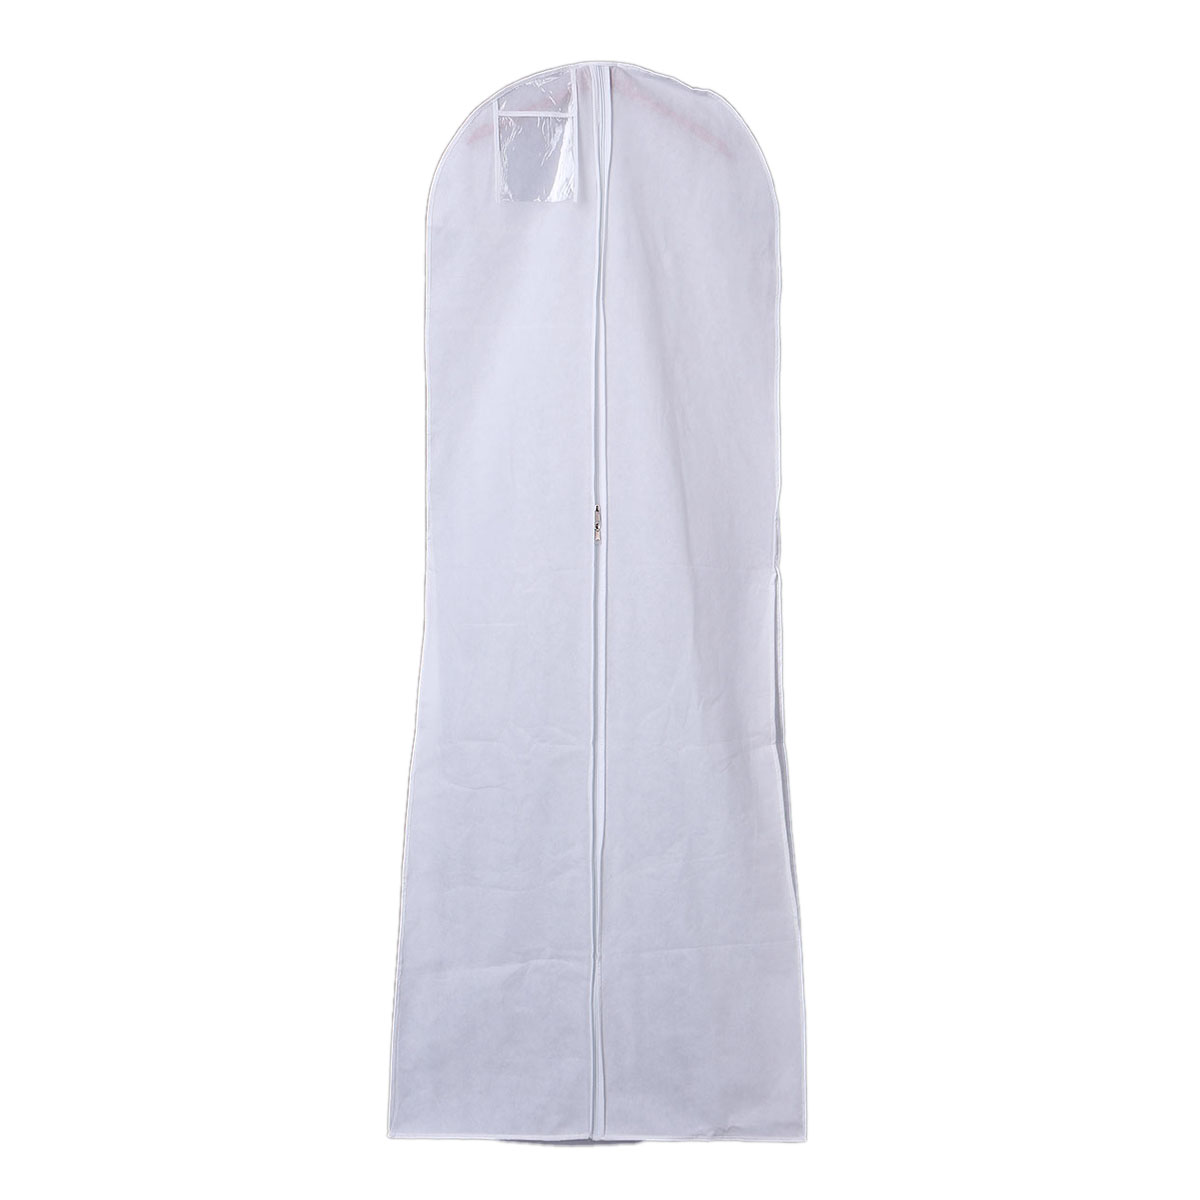 Wedding Dress Bridal Gown Garment Cover Storage Bag Carry Zip Dustproof Ed 190268171618 Ebay